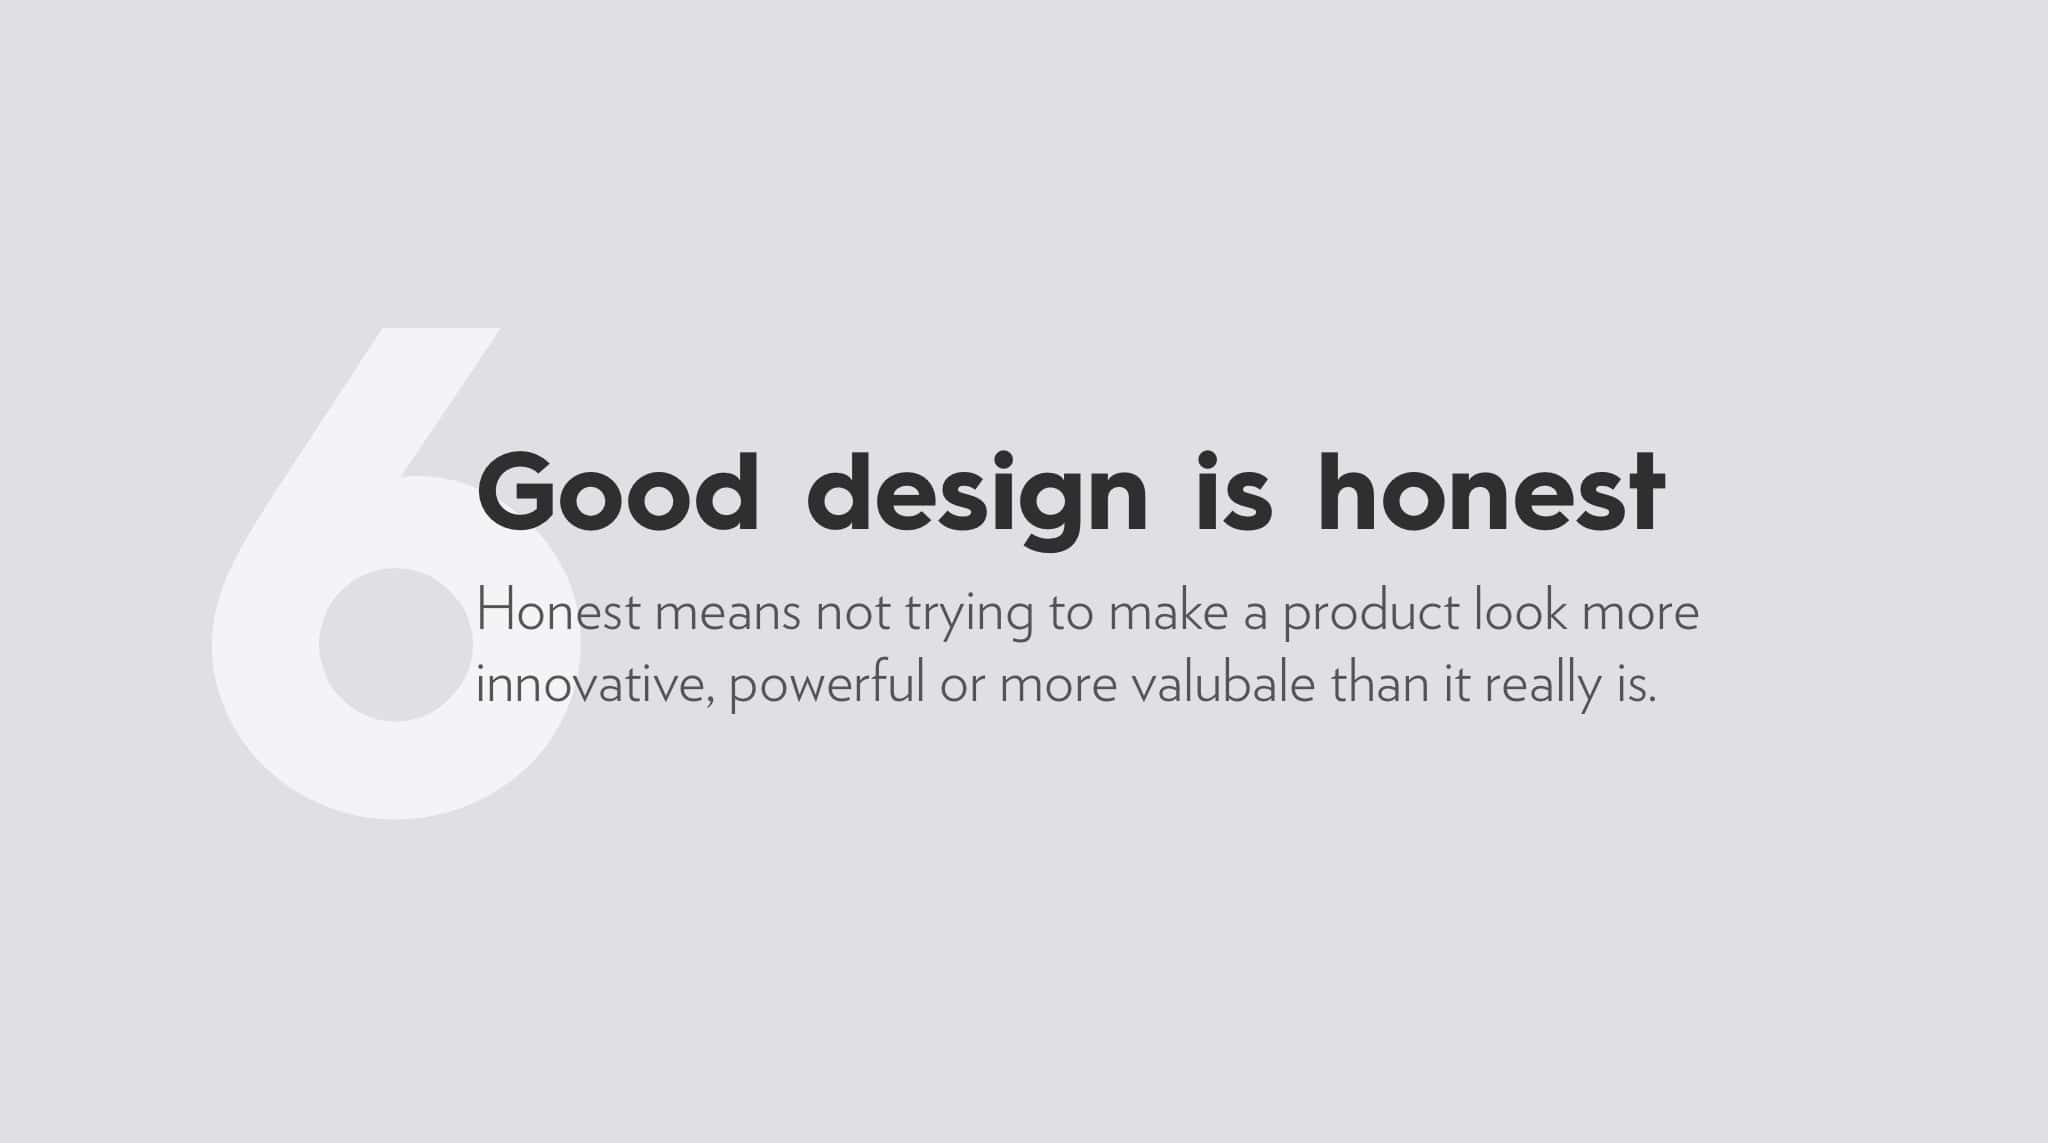 Ten Principles For Good Design by Dieter Rams, good design is honest.